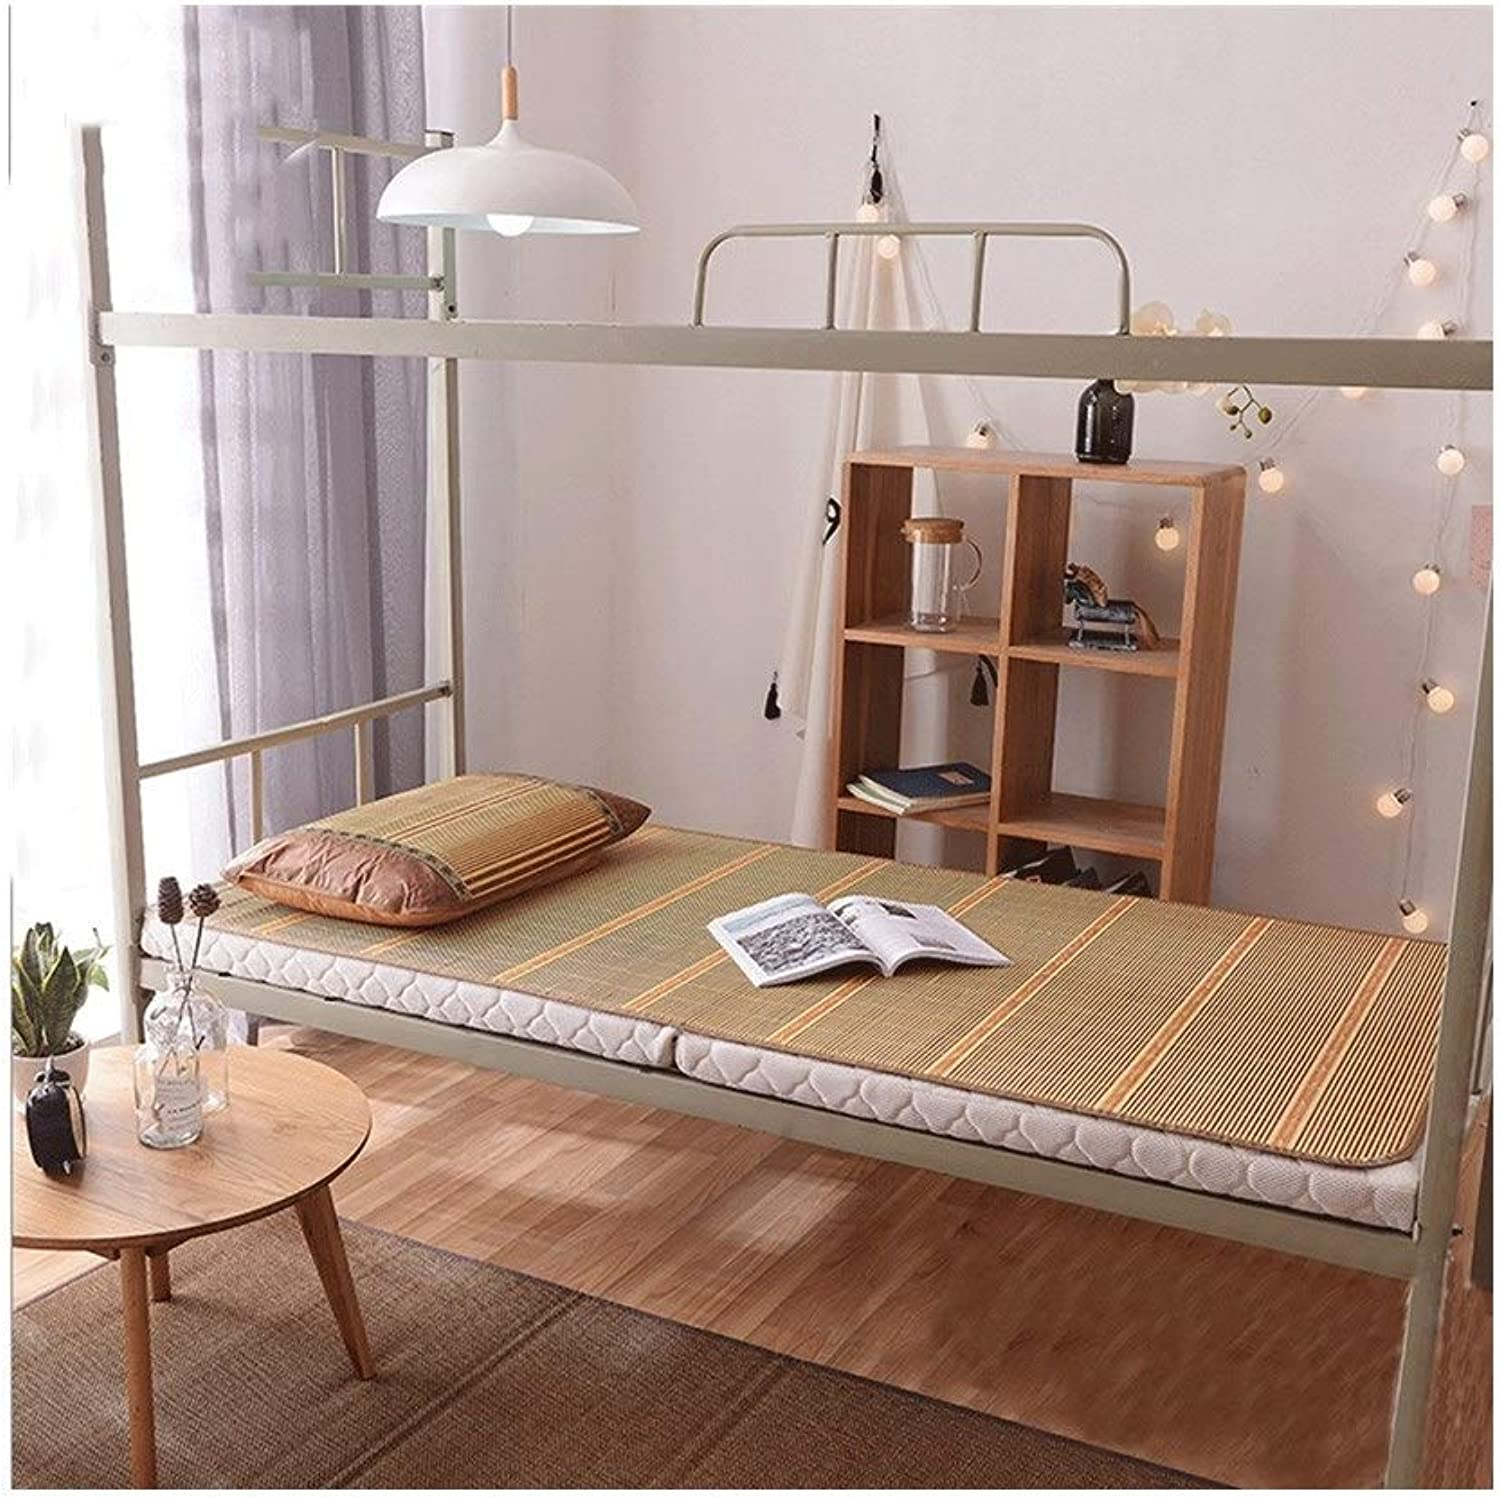 Bamboo Mat Double-Sided Folding Single Student Dormitory Bamboo Mat Without Burrs Natural Environmental Predection No Smell